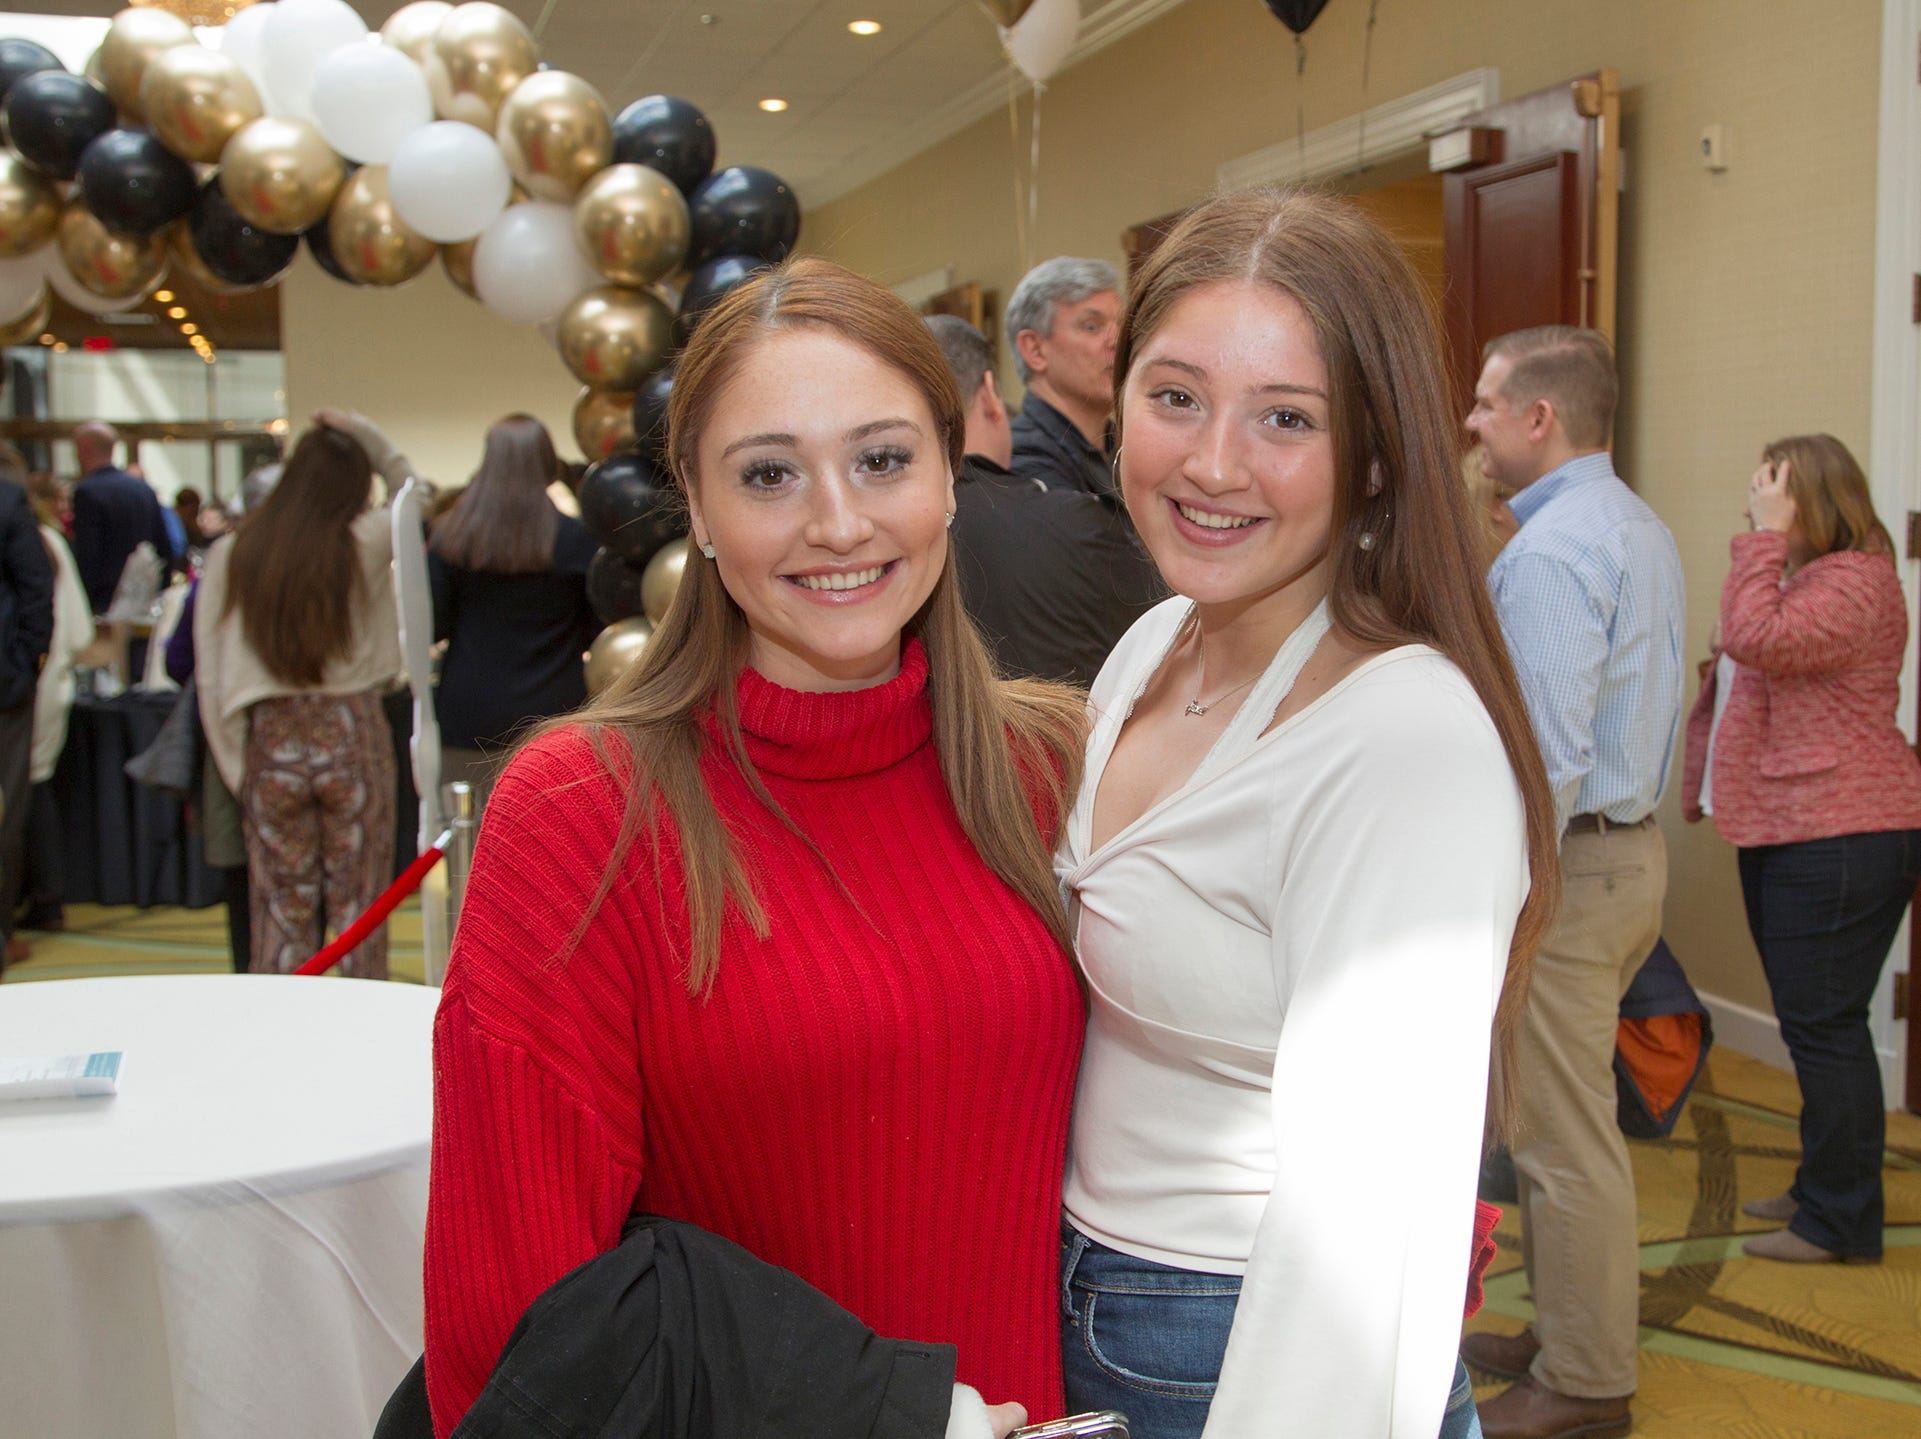 Brianna and Meadow Paliotte. Ridgewood High School seniors held their Project Graduation fashion show at the Teaneck Marriott at Glenpointe. Students walked the runway in this season's latest fashion trends. All funds raised benefited the school's Project Graduation Fund for the class of 2019. 03/03/2019